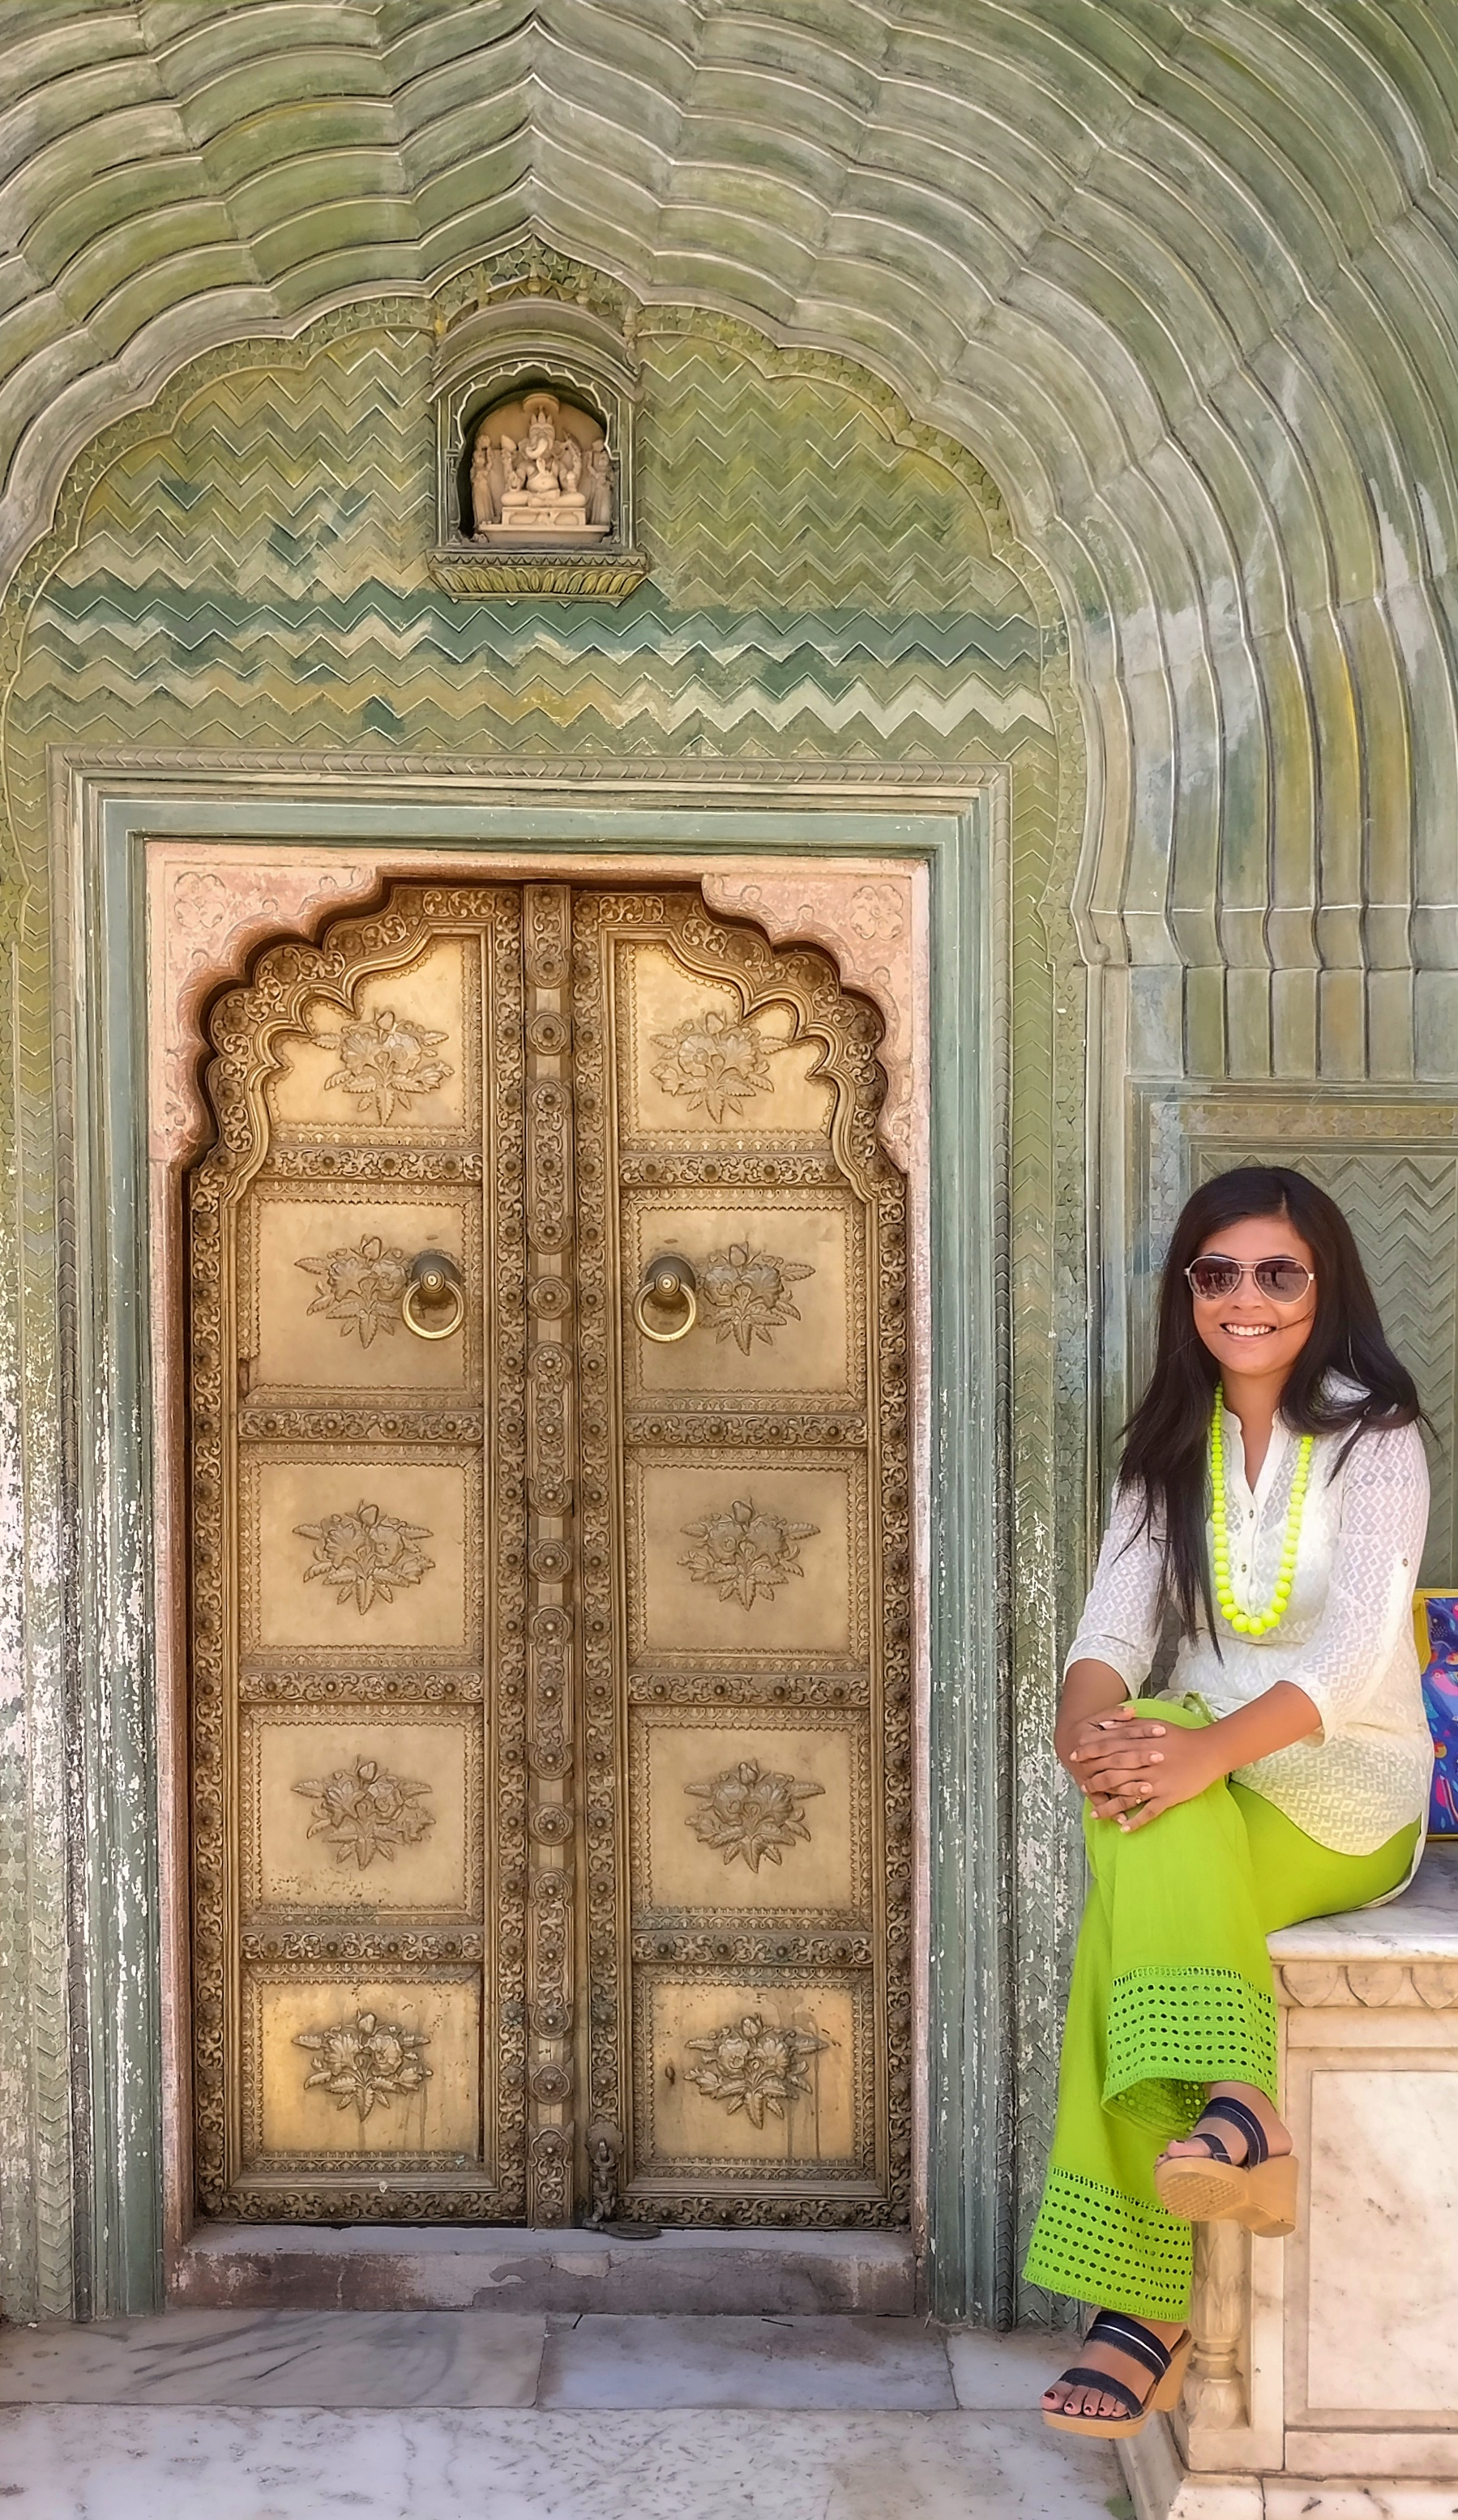 ... Jaipur A quick pose with a beautiful door in the City Palace ... & Photo Blog: The Doors of India u2013 One Earth Too Less pezcame.com